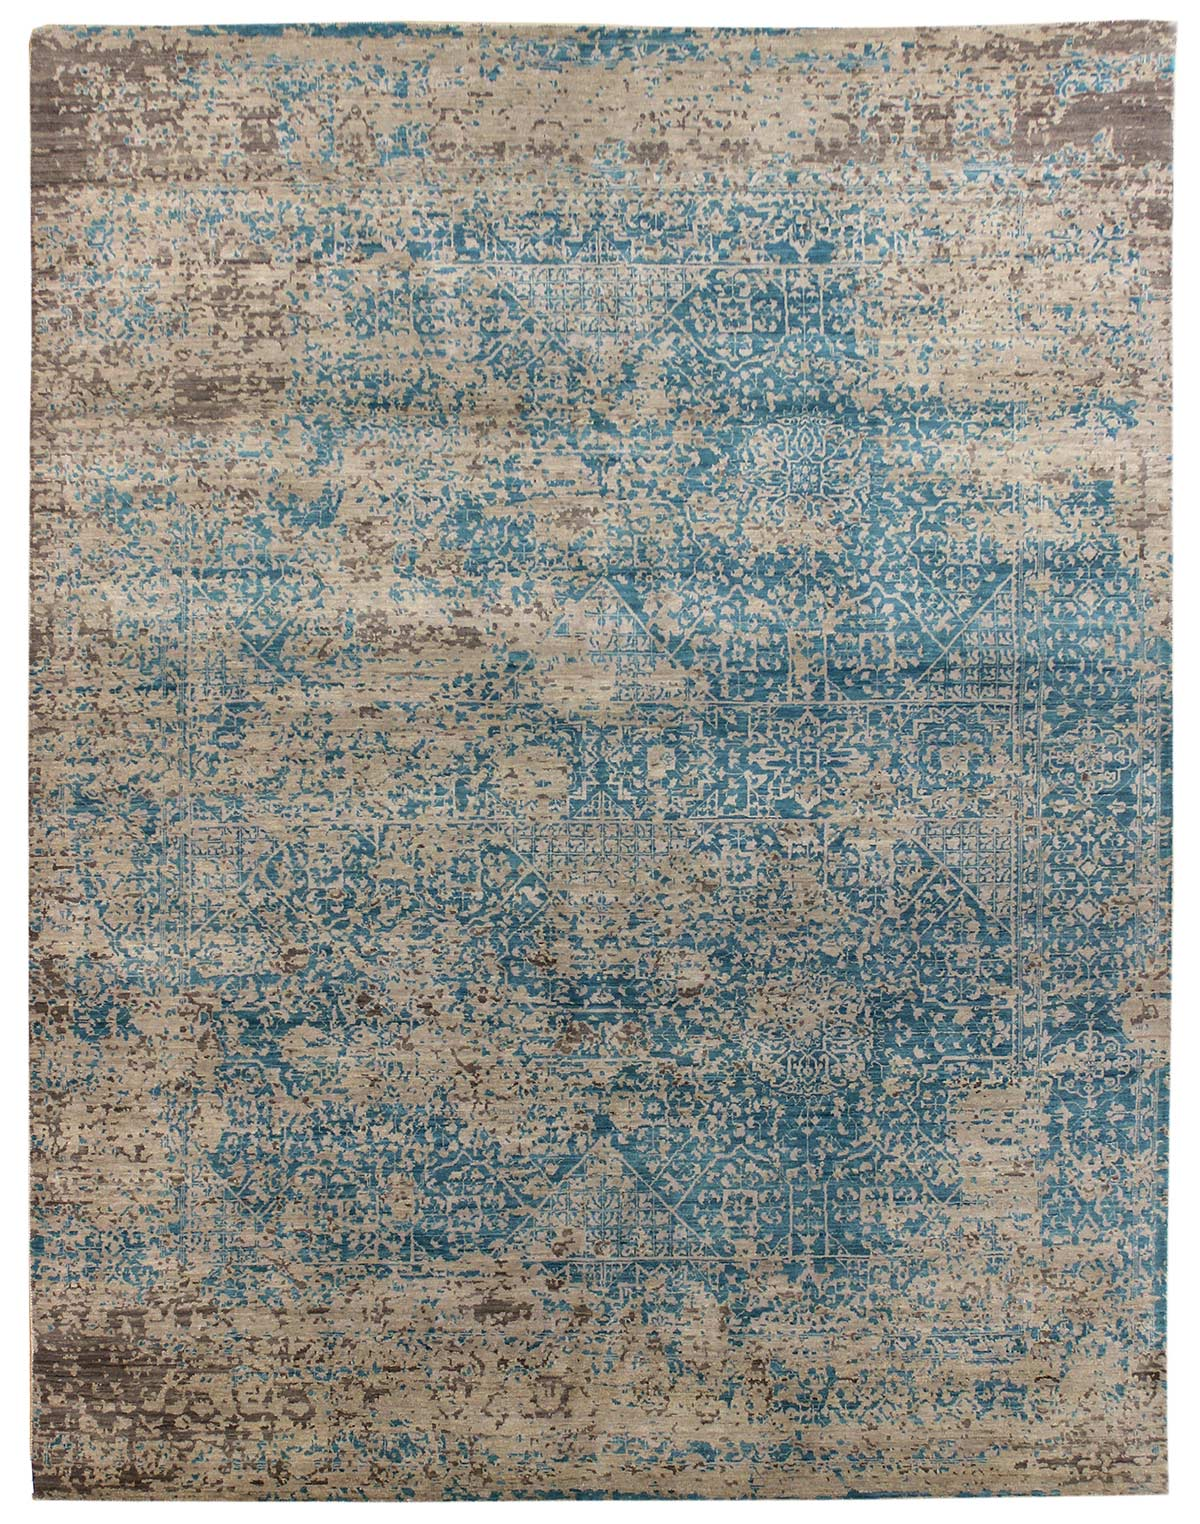 Mamluk Handwoven Transitional Rug